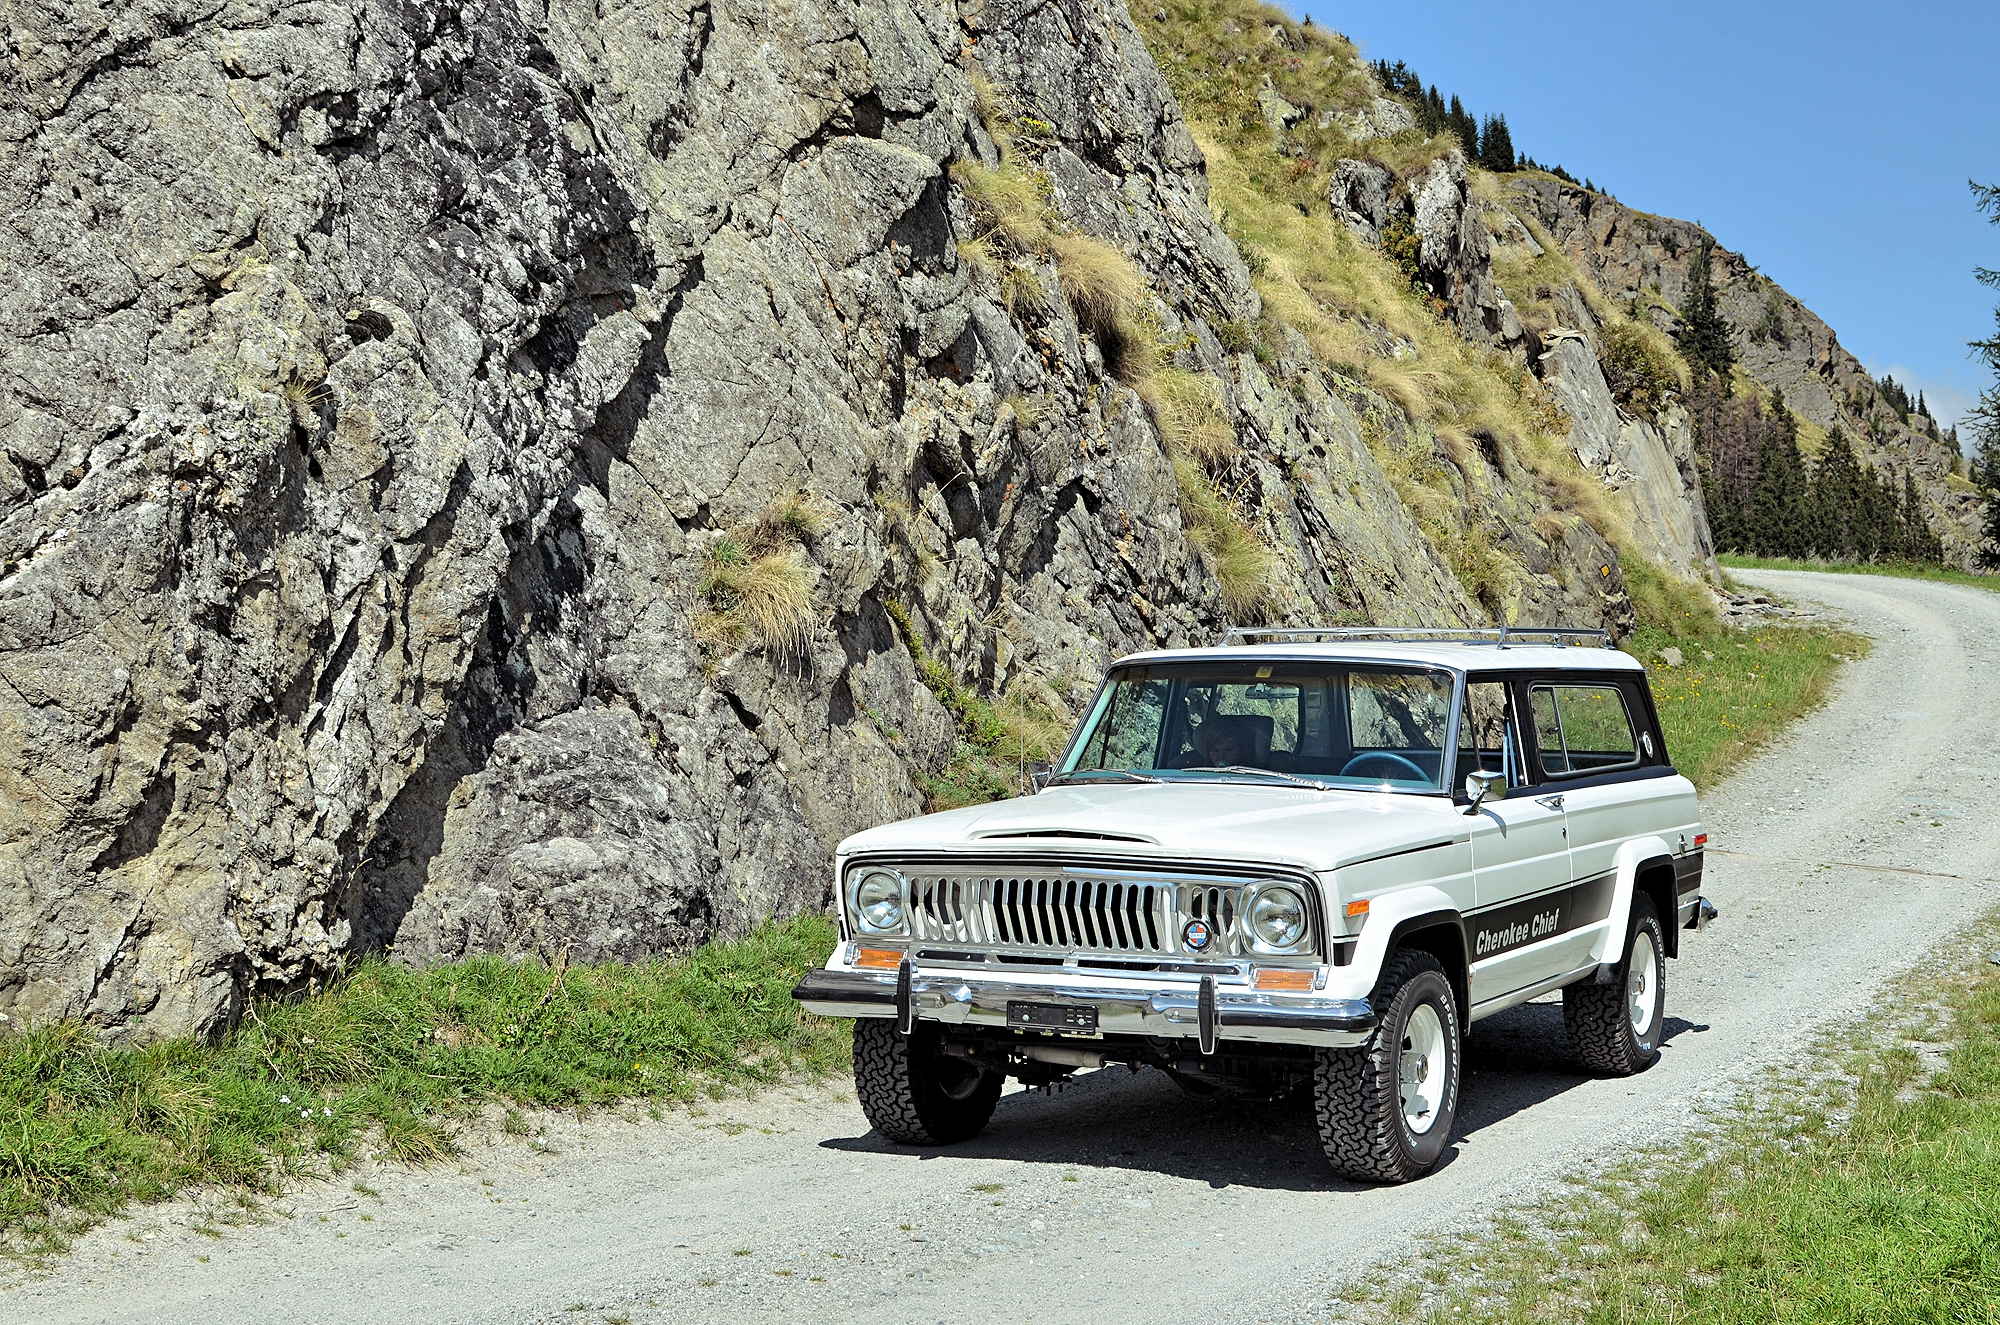 jeep-cherokee-chief-shooting-90.jpg